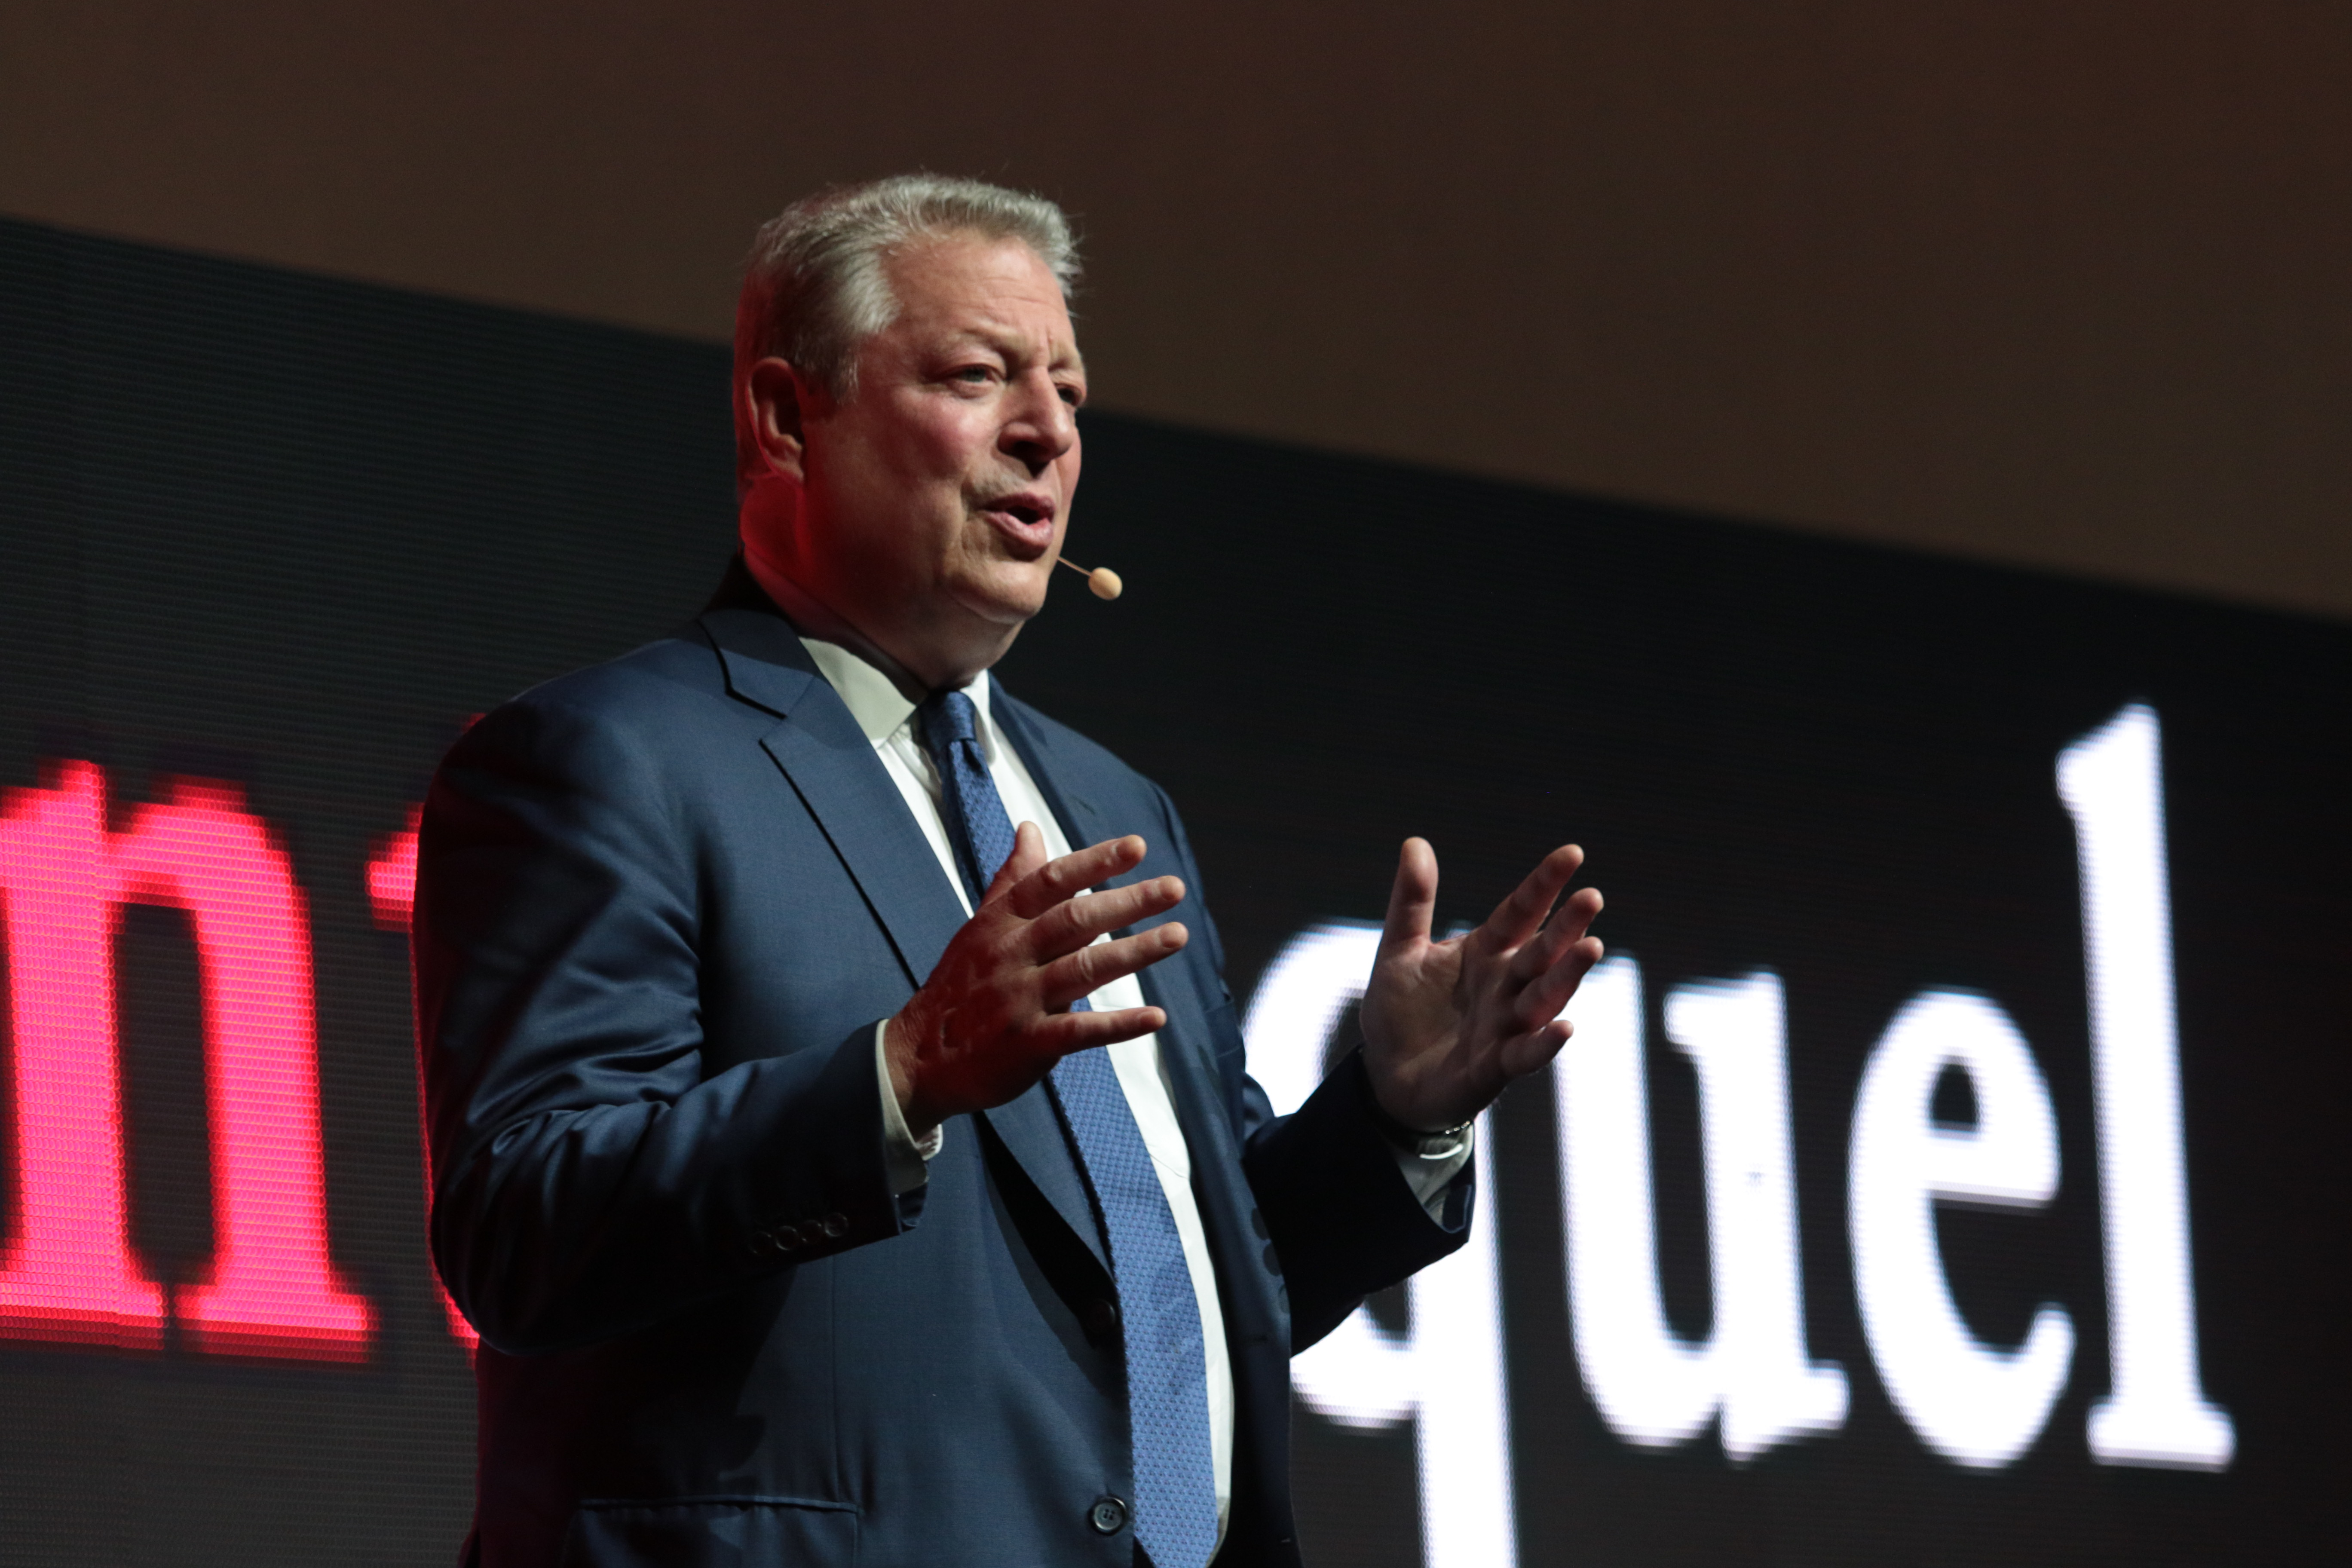 Al Gore appears on stage as Paramount Pictures hosts Cinema Con 2017 film presentation at Caesars Palace in Las Vegas, Nevada on Tuesday, March 28, 2017. .(Photo: Alex J. Berliner/ABImages)